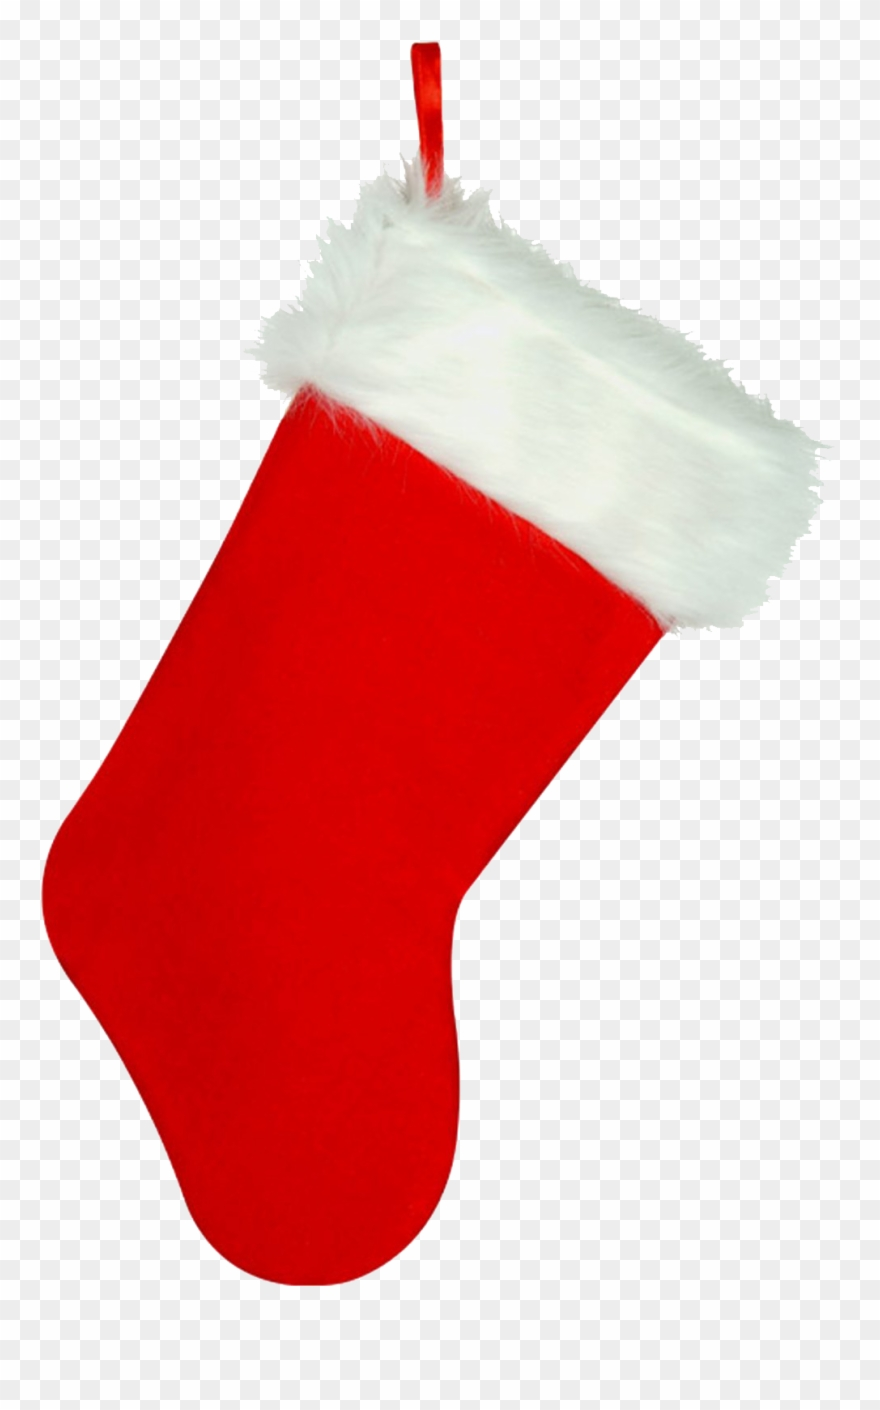 Christmas Stockings Png.Christmas Stockings Free Png Transparent Background Clipart